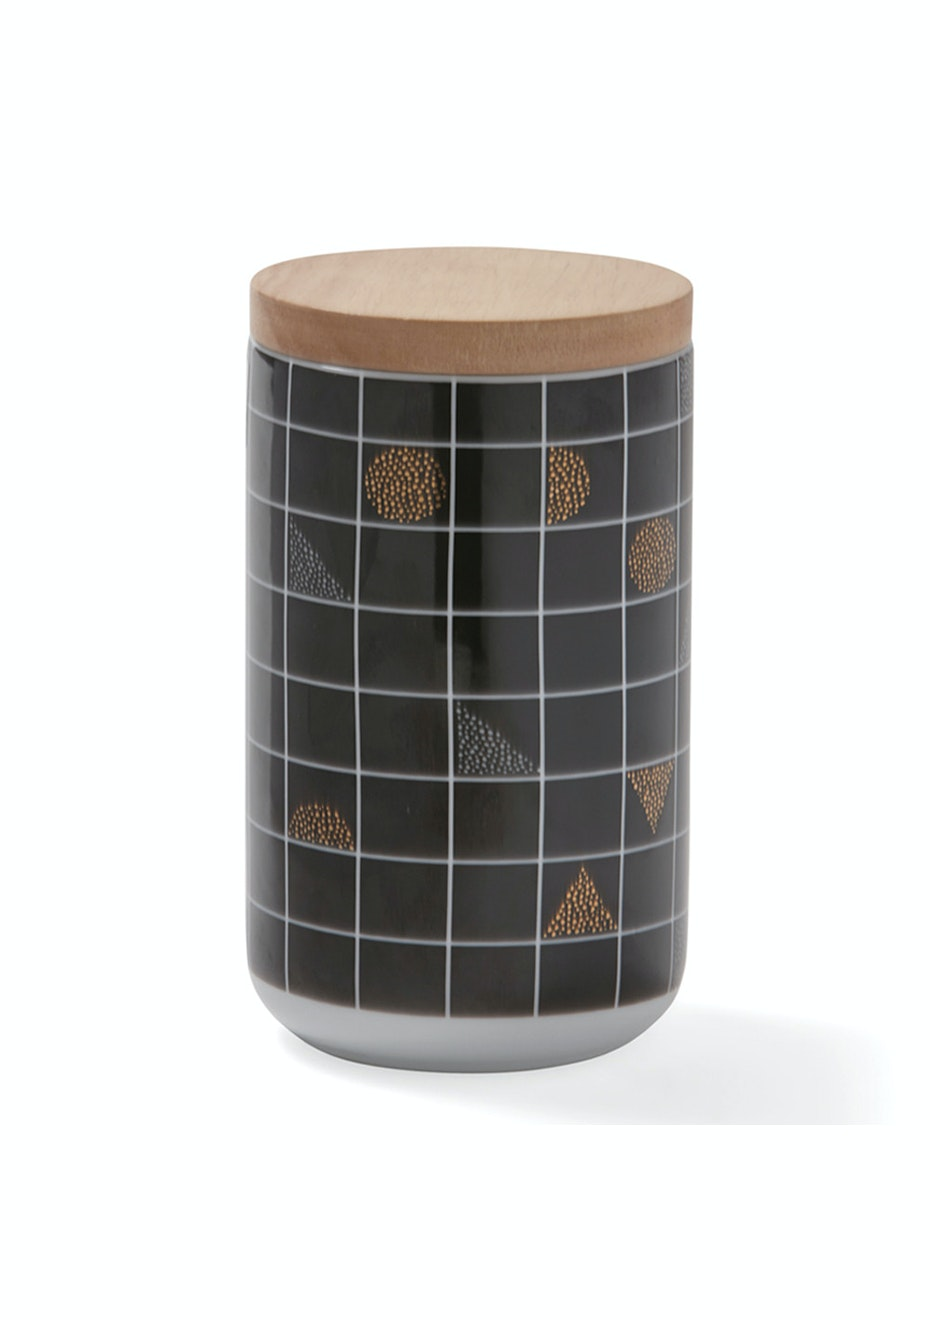 Me & My Trend - Xtall Black Grid Canister